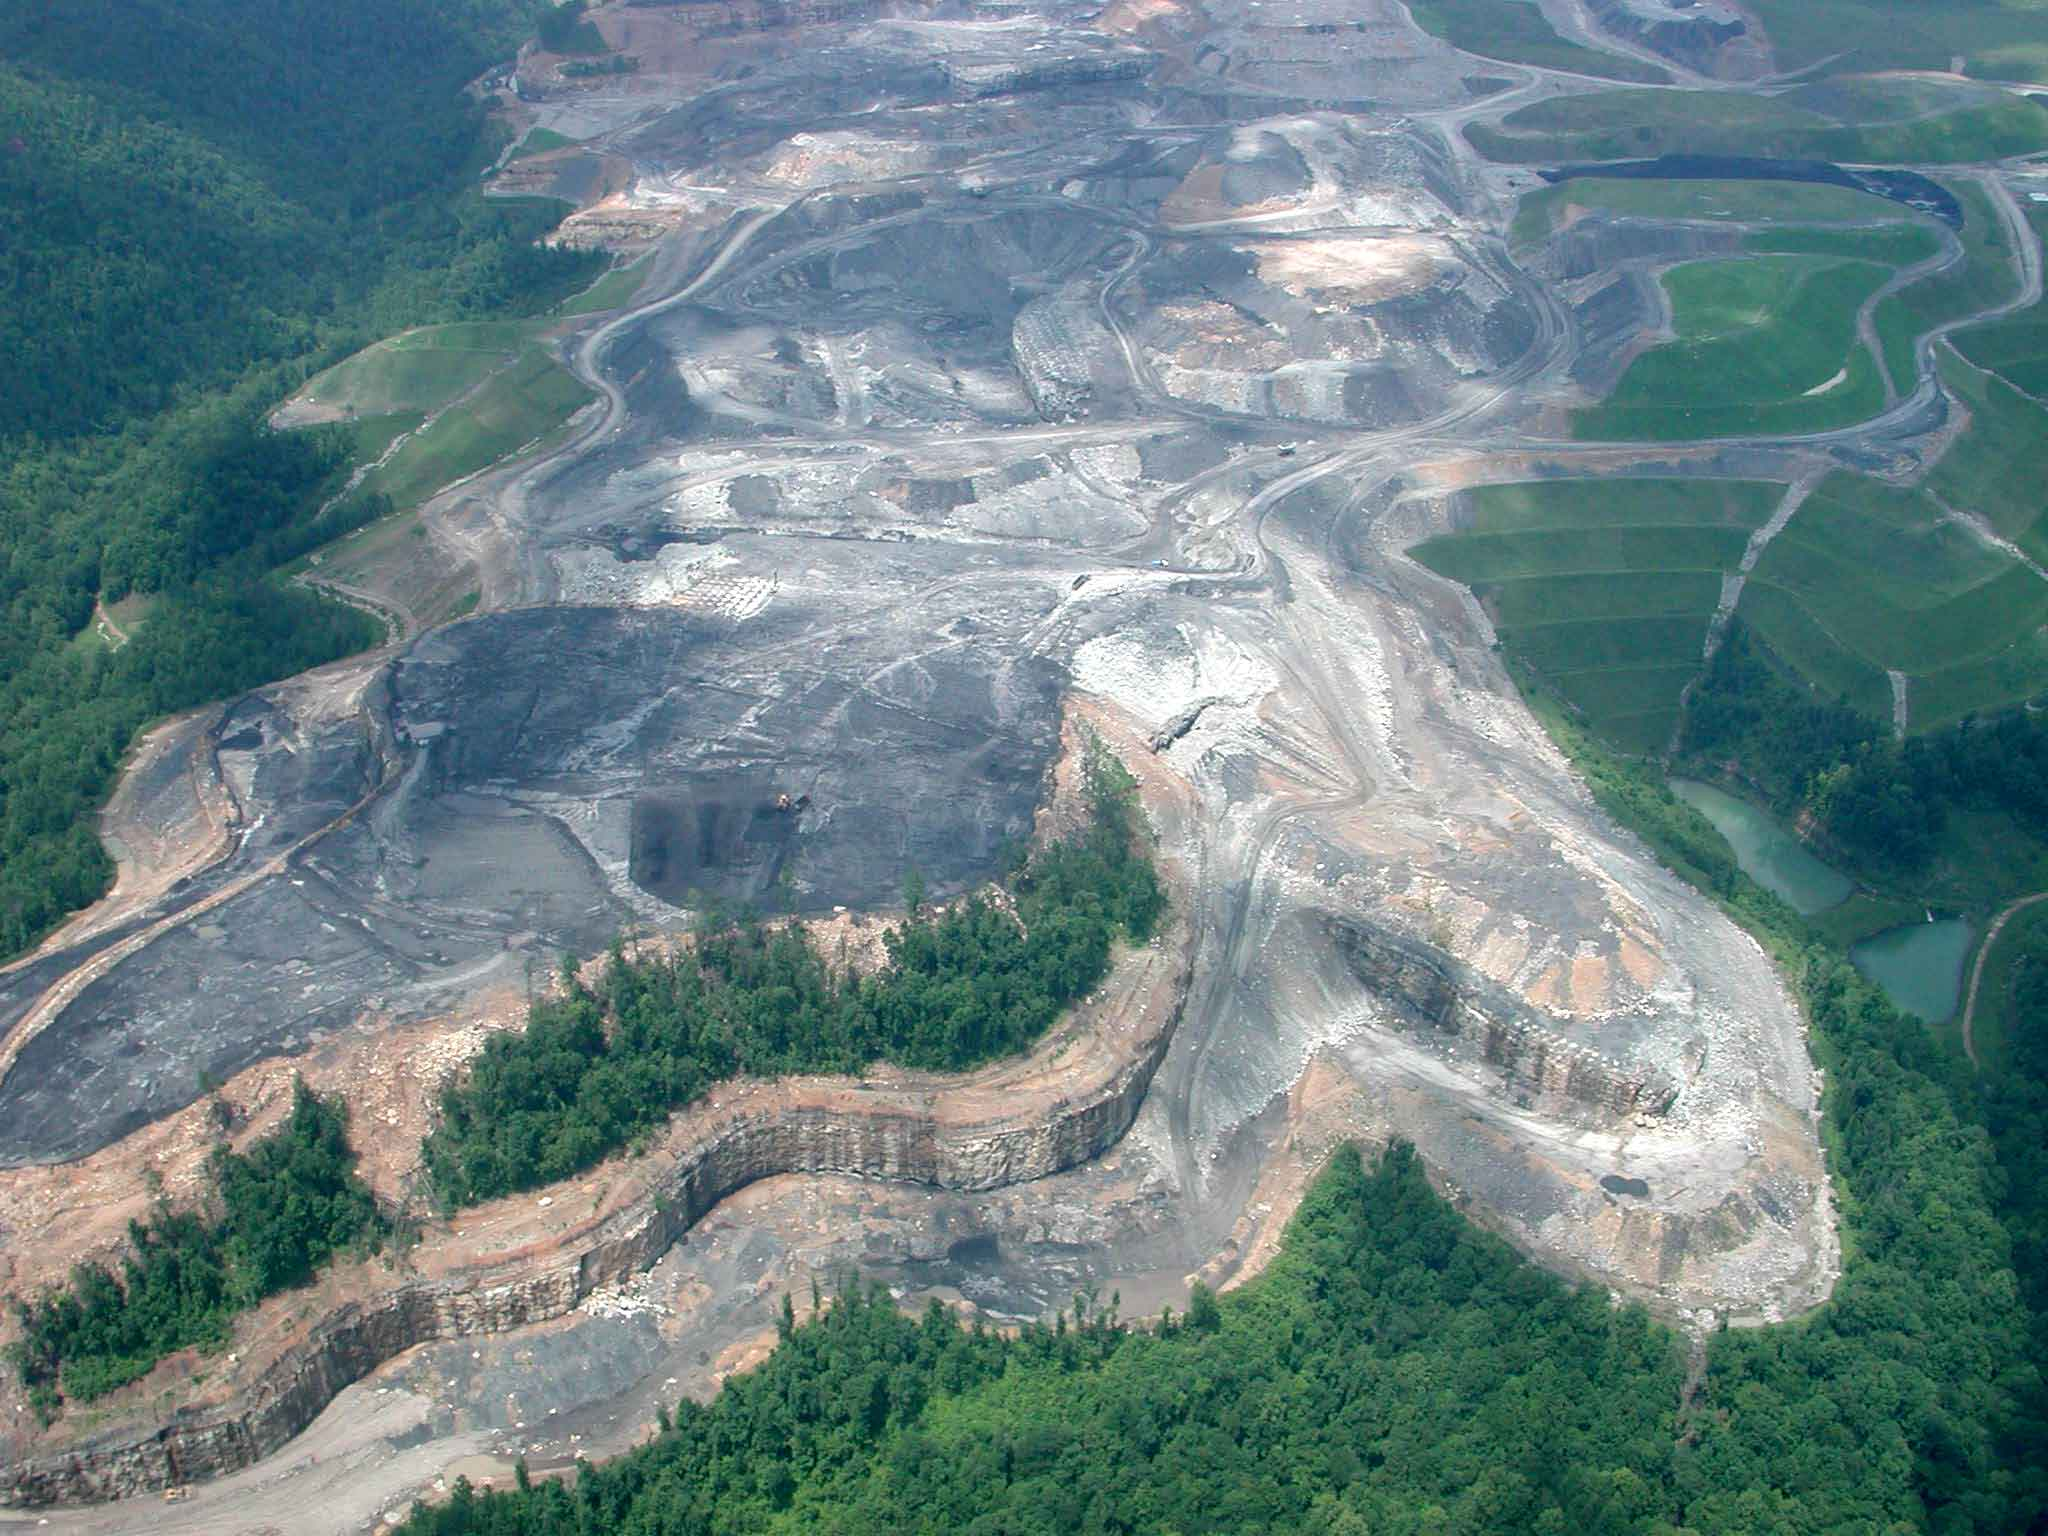 west virginia only produces % of us coal trailing wyoming which because people see these from